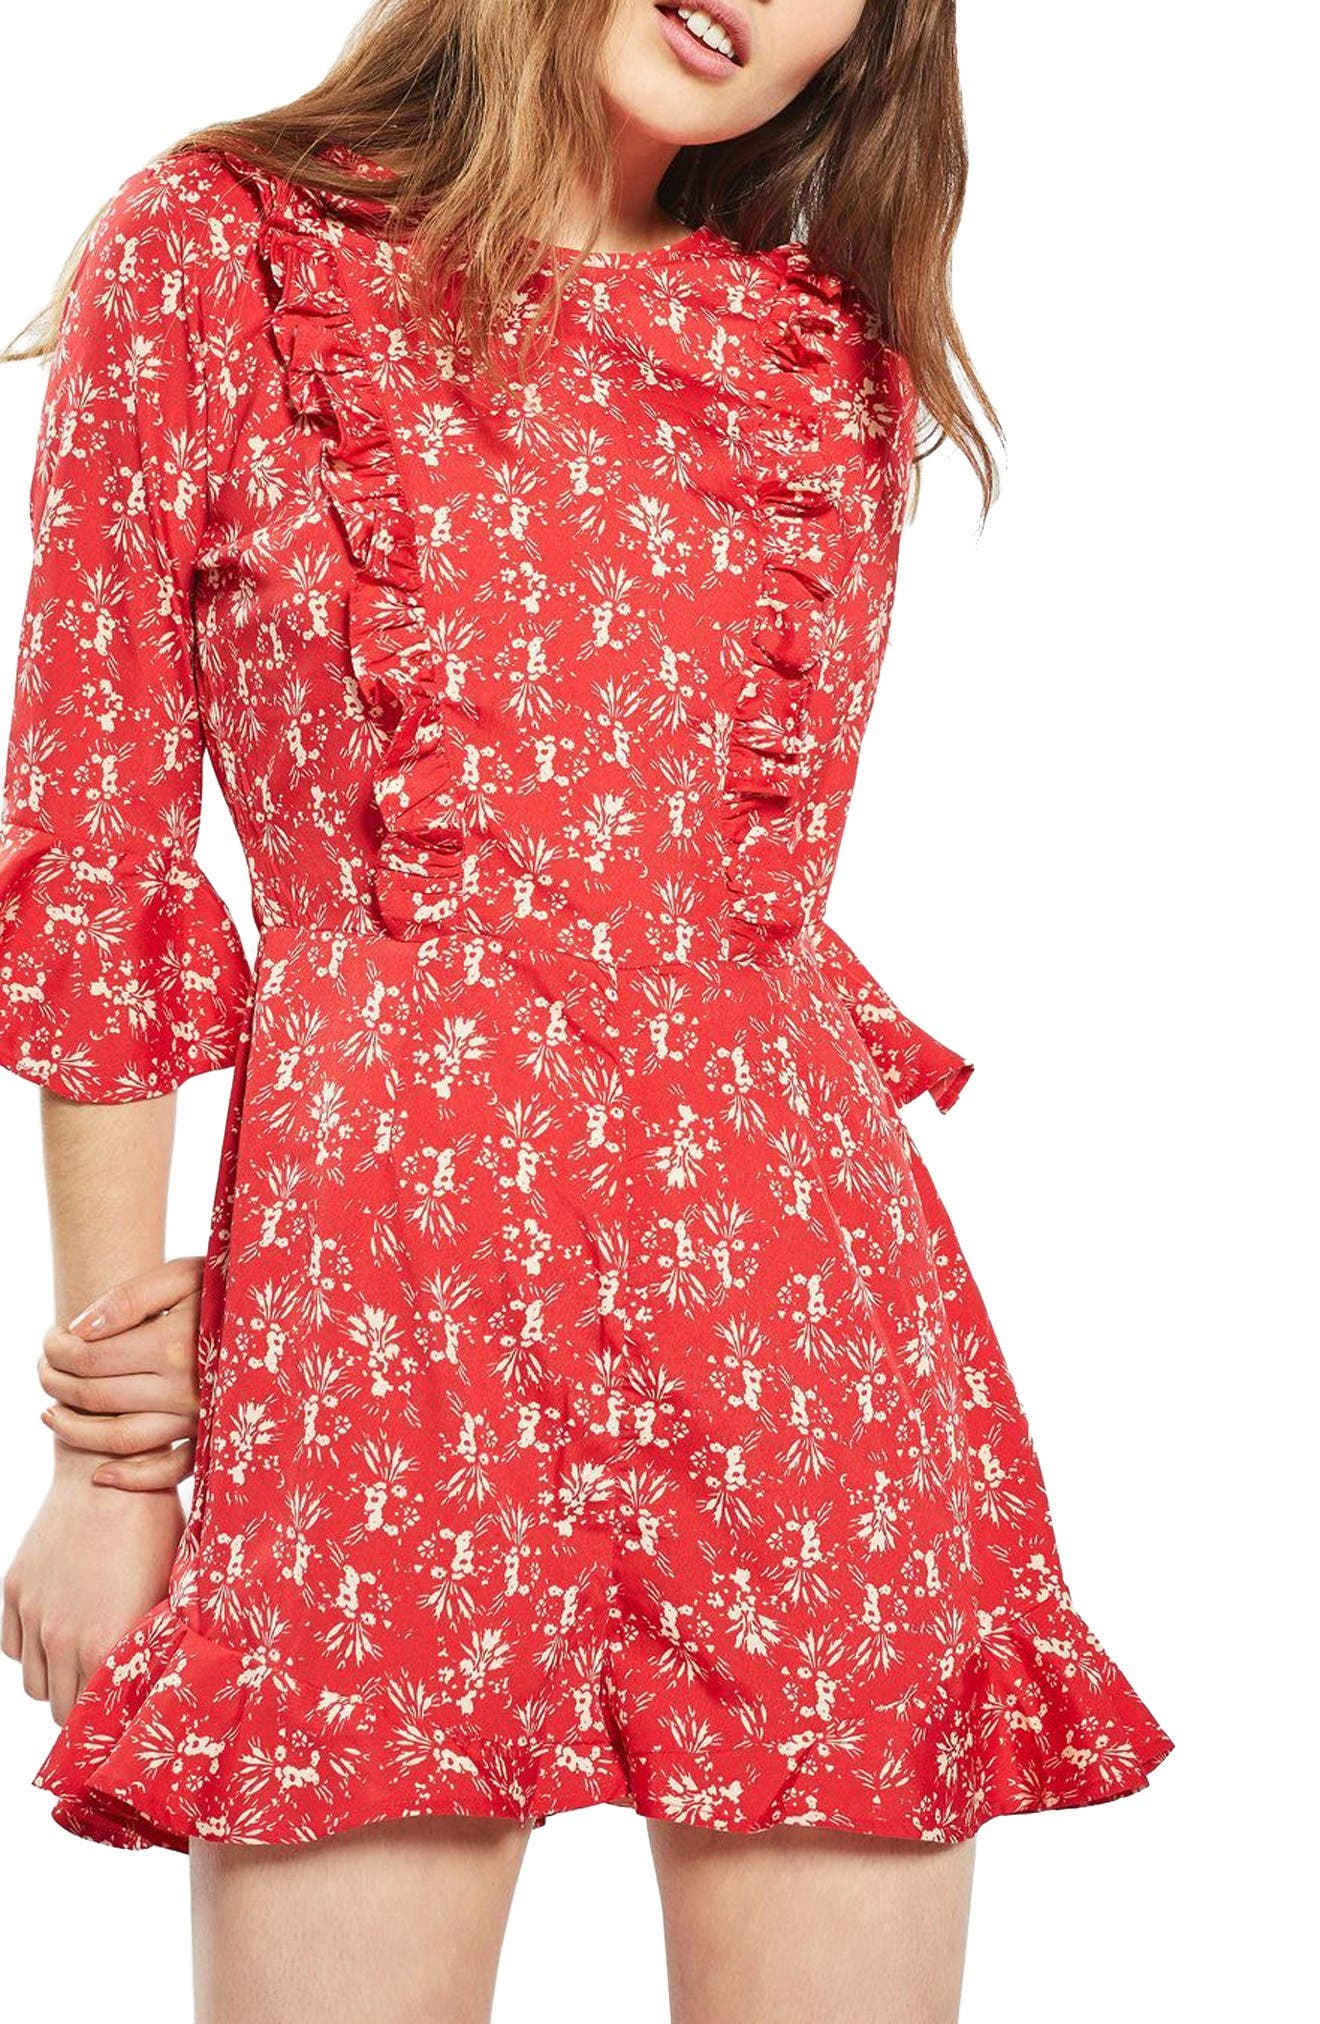 Alternate Image 1 Selected - Topshop Floral Ruffle Romper